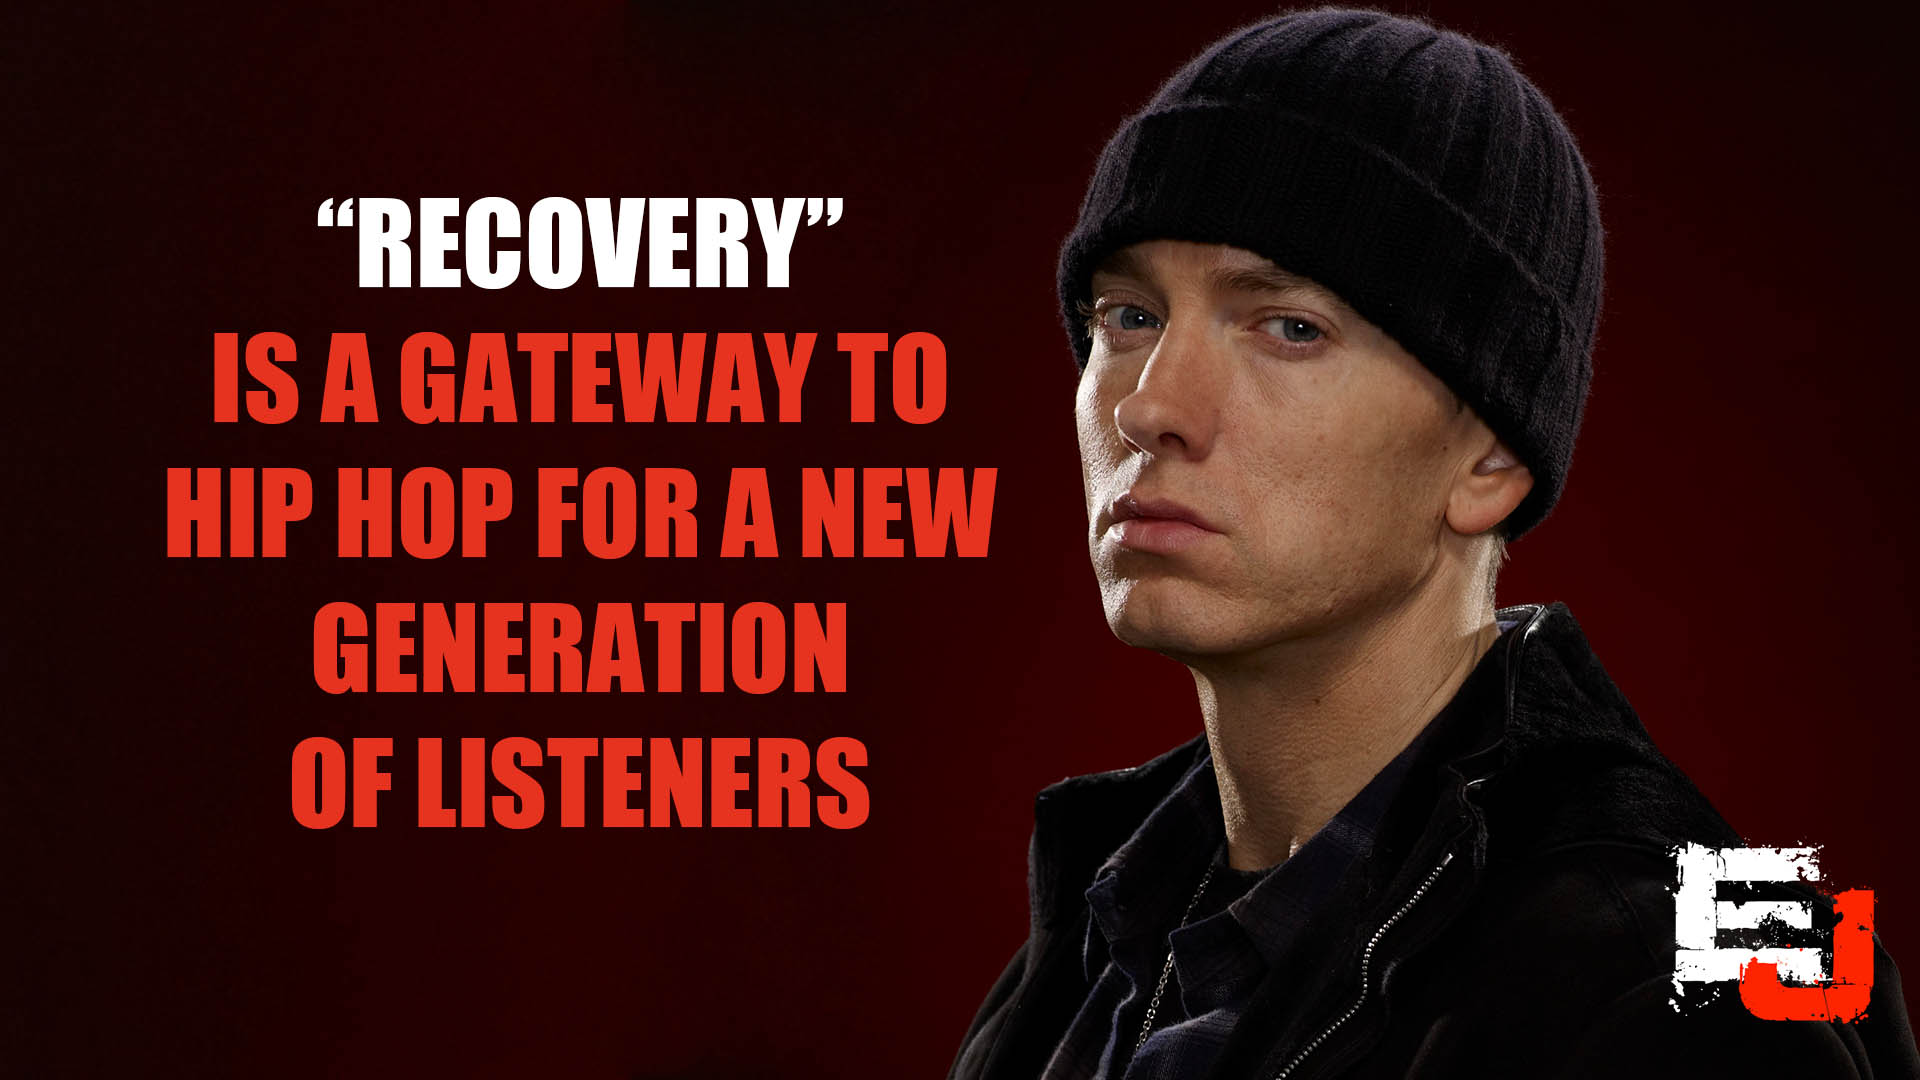 """""""Recovery"""" Is A Gateway To Hip Hop For A New Generation Of Listeners"""